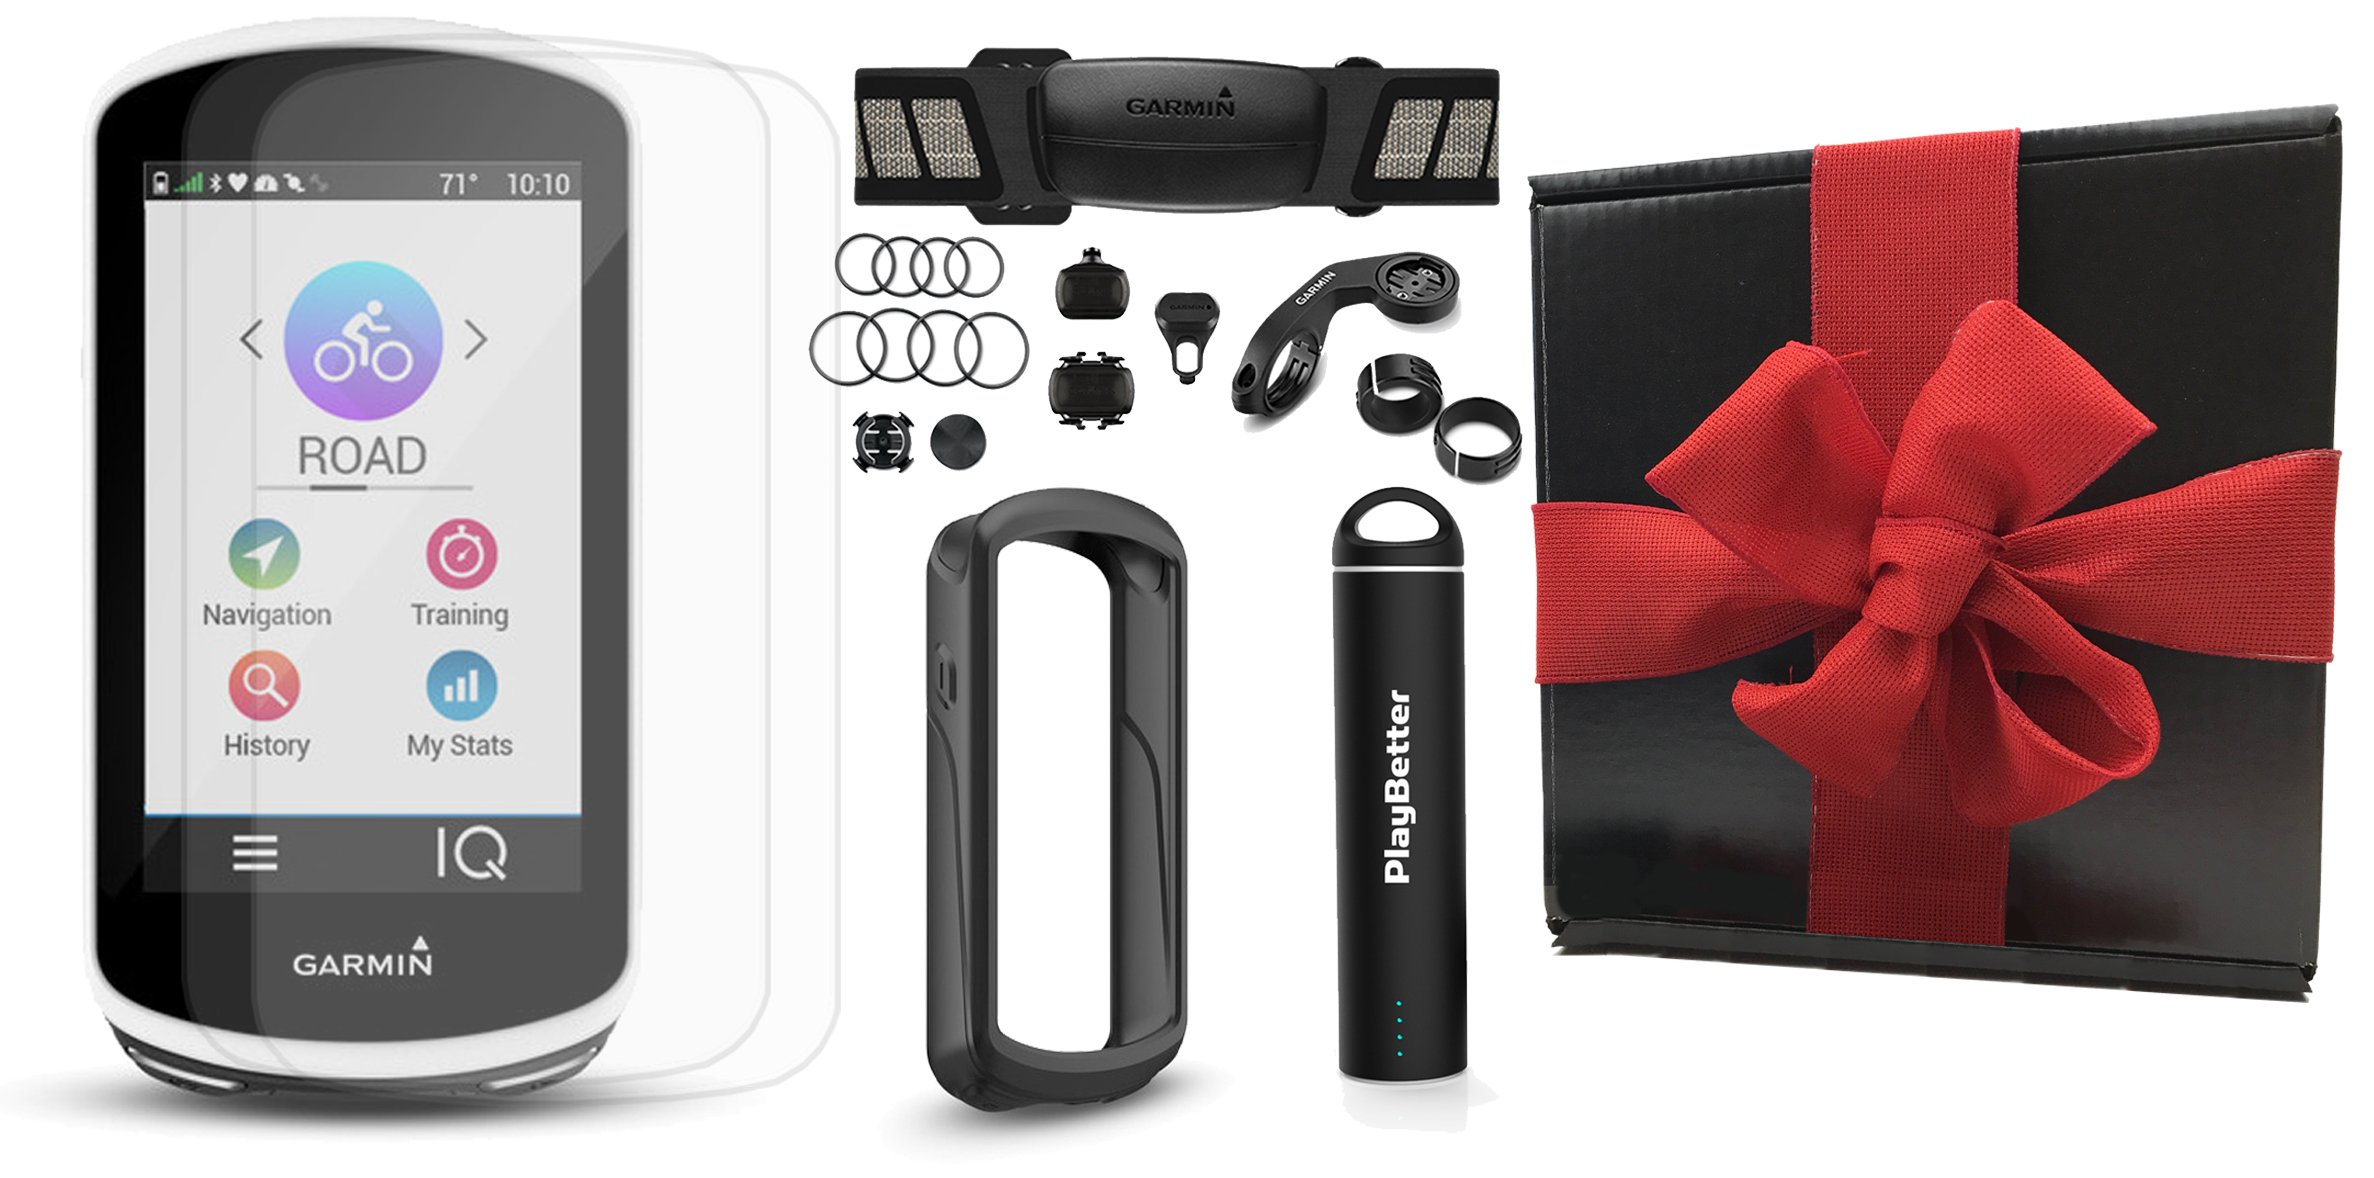 Garmin Edge 1030 Gift Box Bundle | with PlayBetter Silicone Case, Screen Protectors & Portable Charger | Mounts | GPS Bike Computer | Gift Box (+HRM +Speed/Cadence Senors, Black Case)